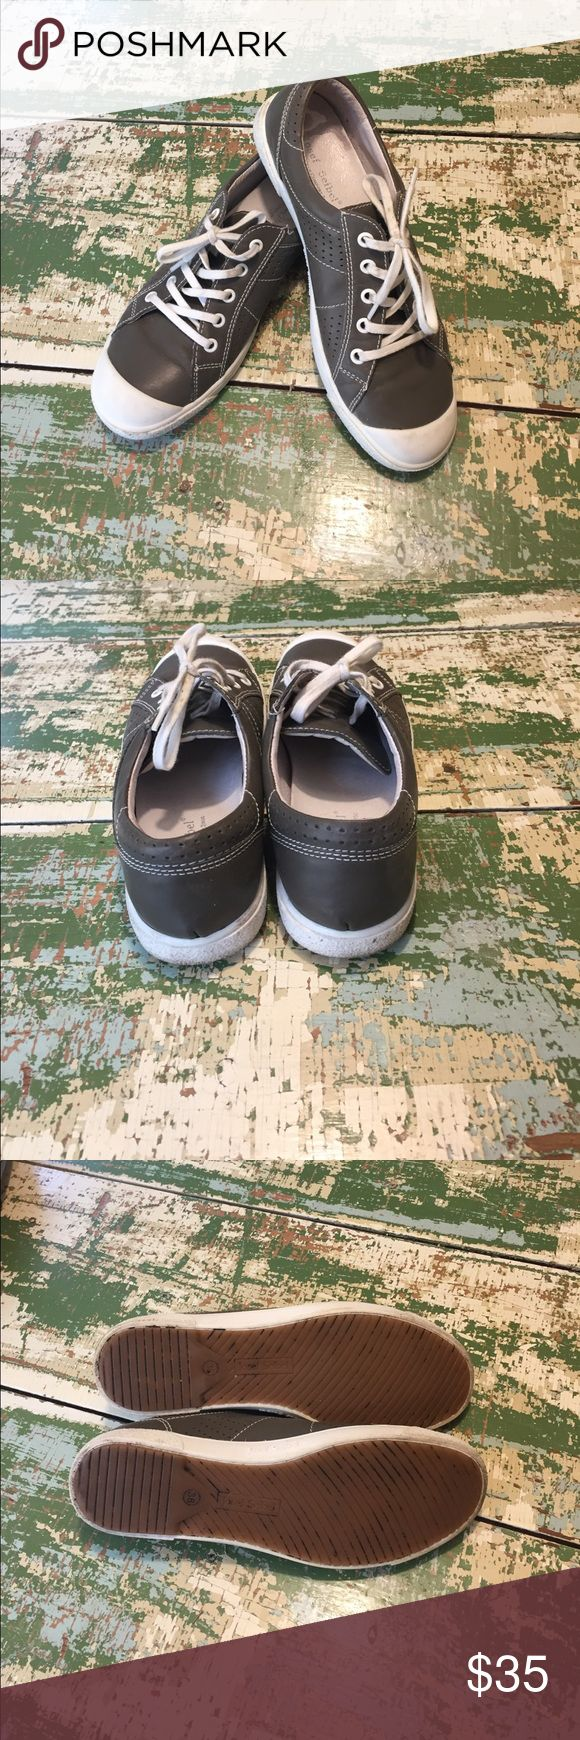 Josef Seibel leather tennis shoes Josef Seibel leather tennis shoes. Cute gray color...super insole and construction. Lightly used -- super clean! Josef Seibel Shoes Sneakers